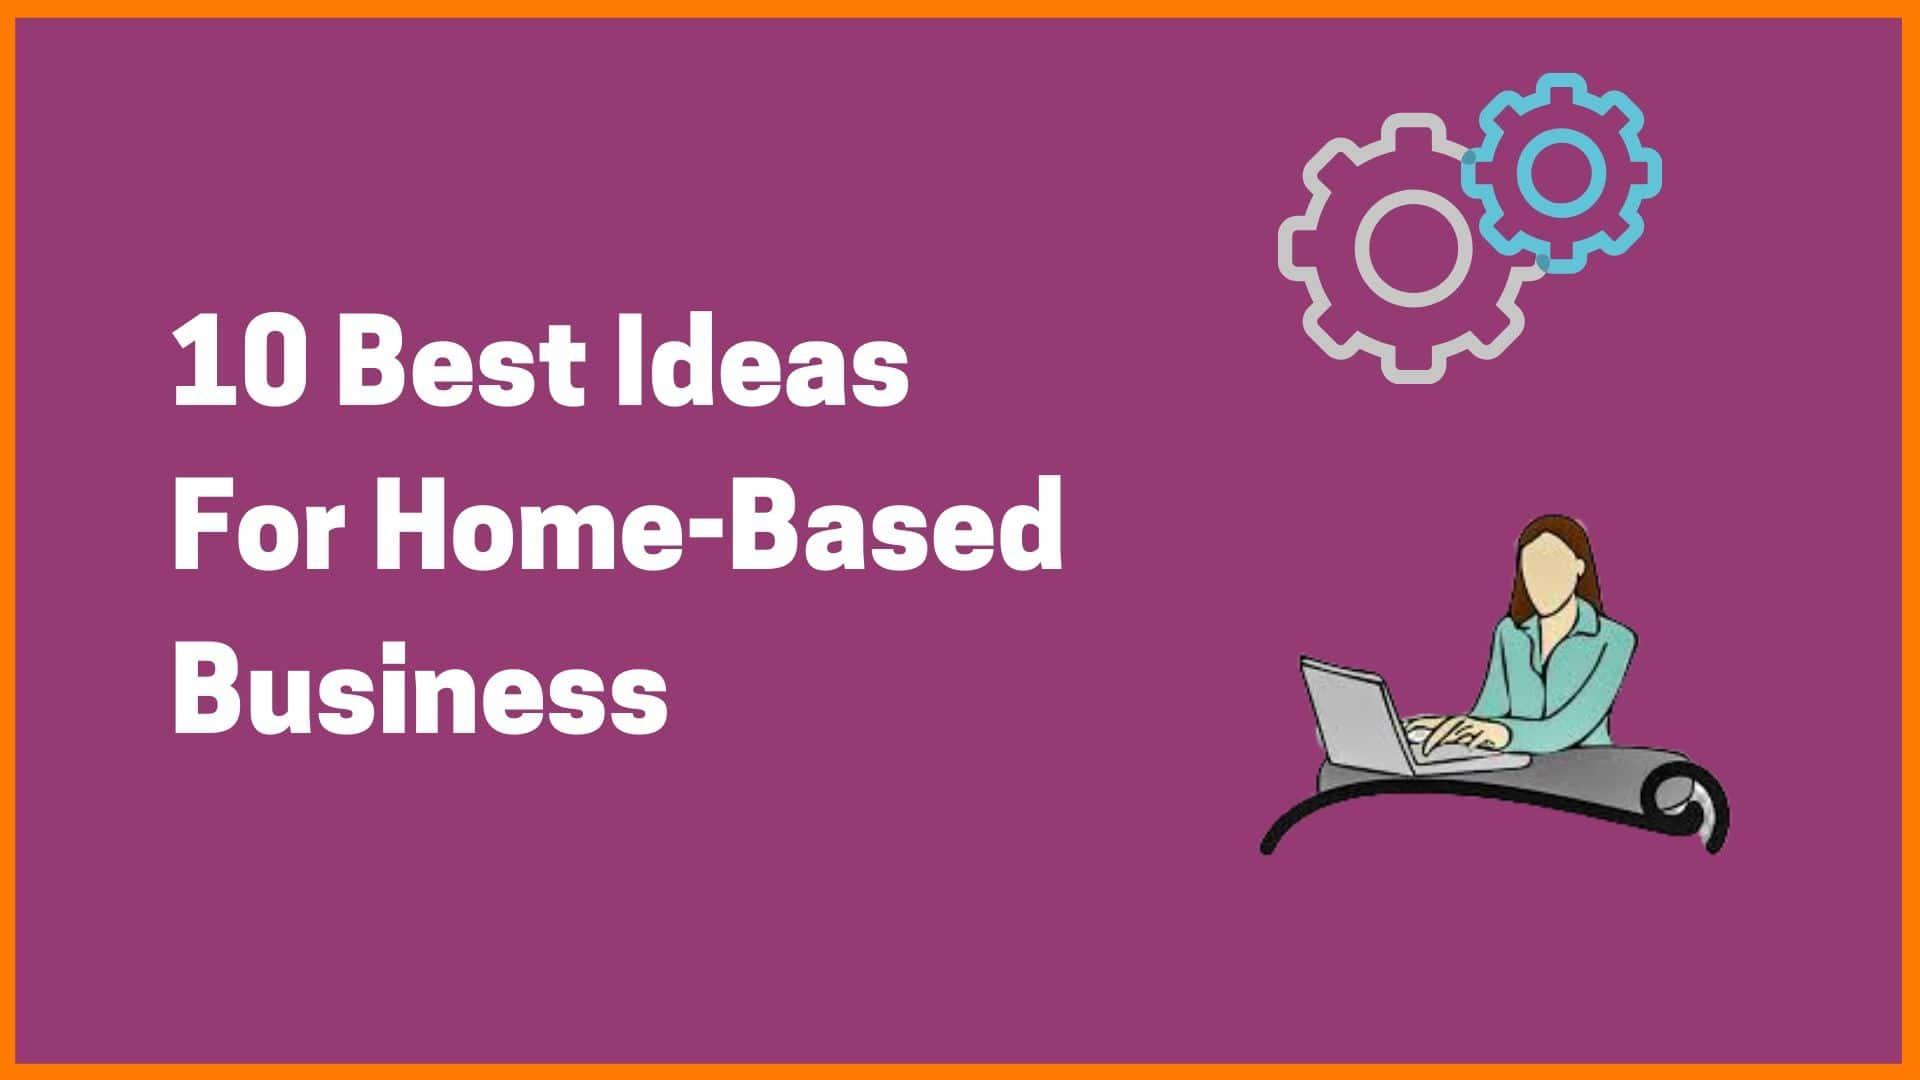 10 Best Ideas For Home-Based Business